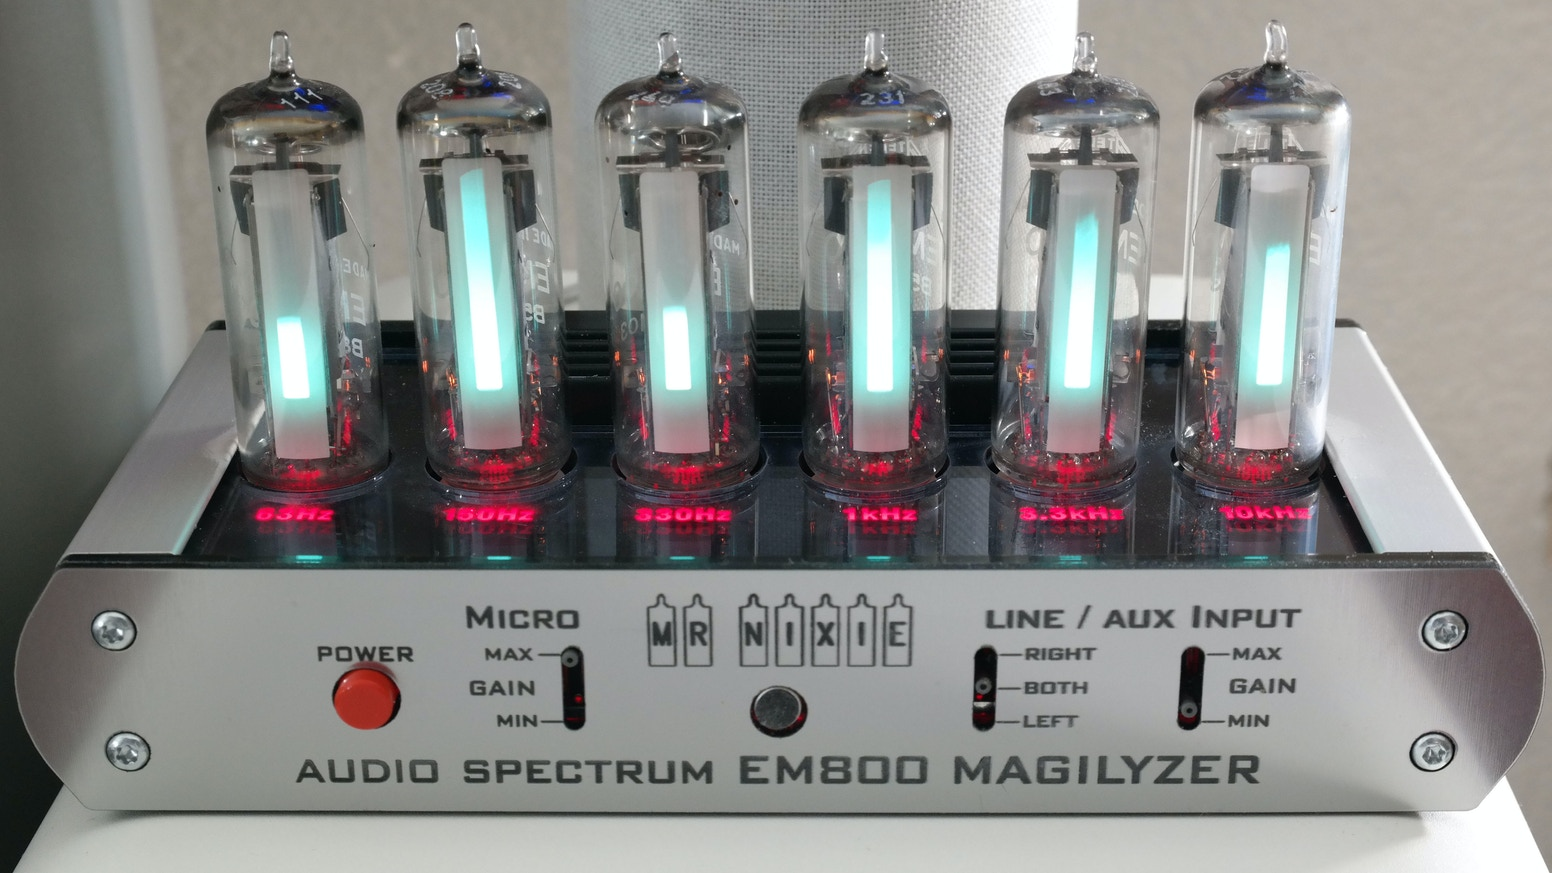 6-Band Audio Spectrum Analyzer with 6 x New Old Stock German TELEFUNKEN EM800 Magic Eye tubes as an easy to build electronic DIY kit.